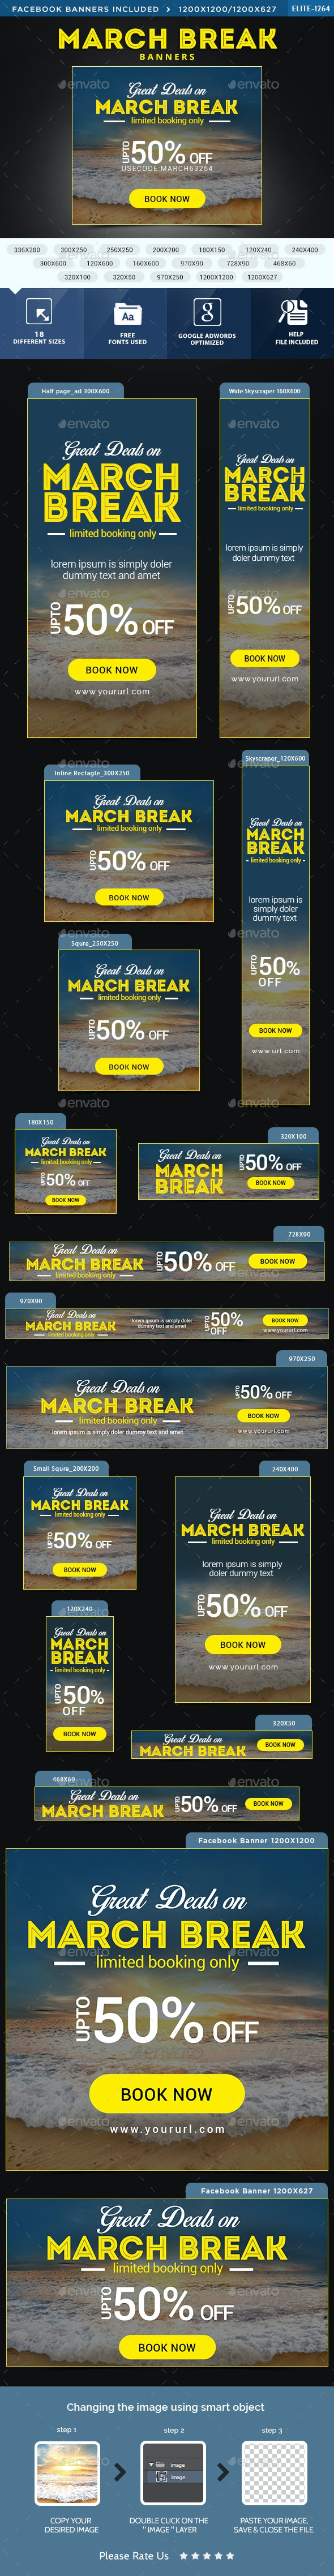 March Break Banners - Banners & Ads Web Elements